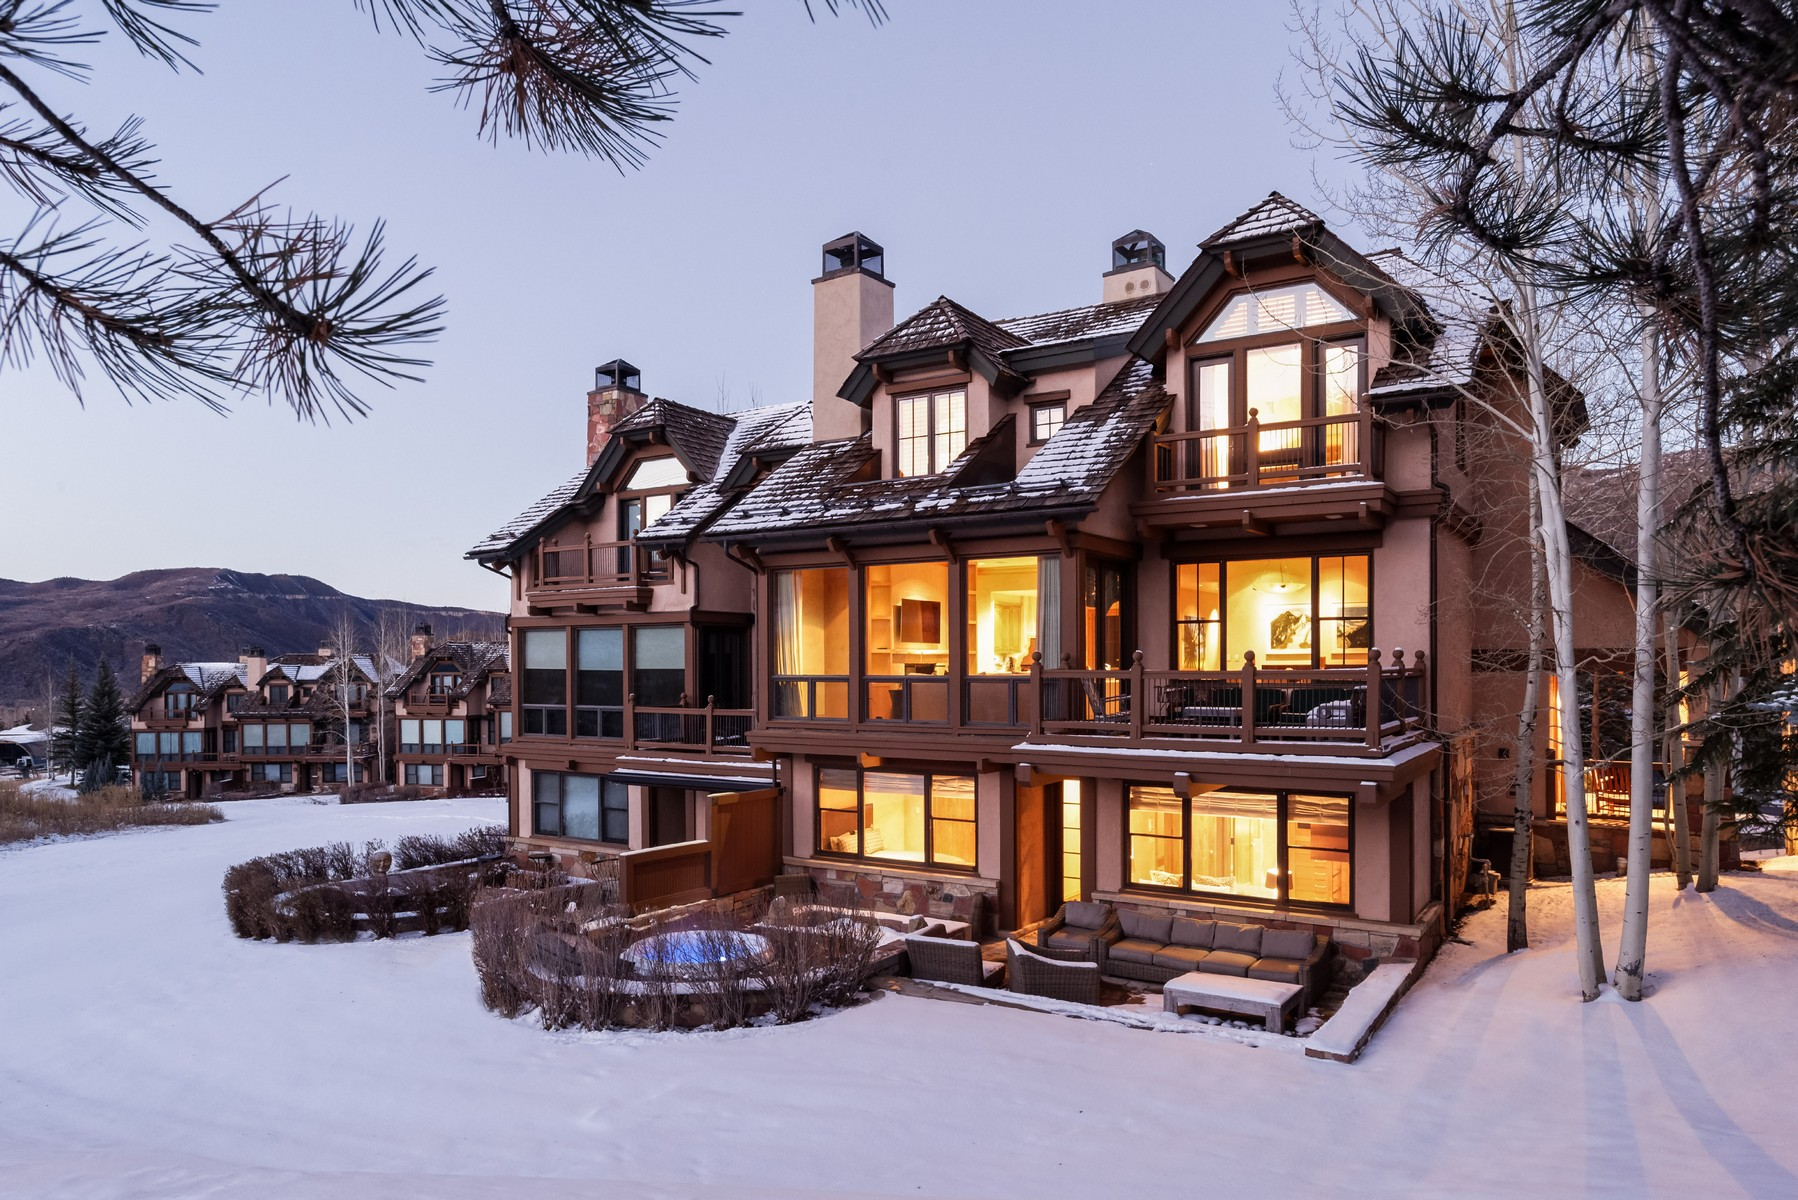 Townhouse for Sale at Owl Creek Home 408 408 Burnt Mountain Drive Snowmass Village, Colorado 81615 United States